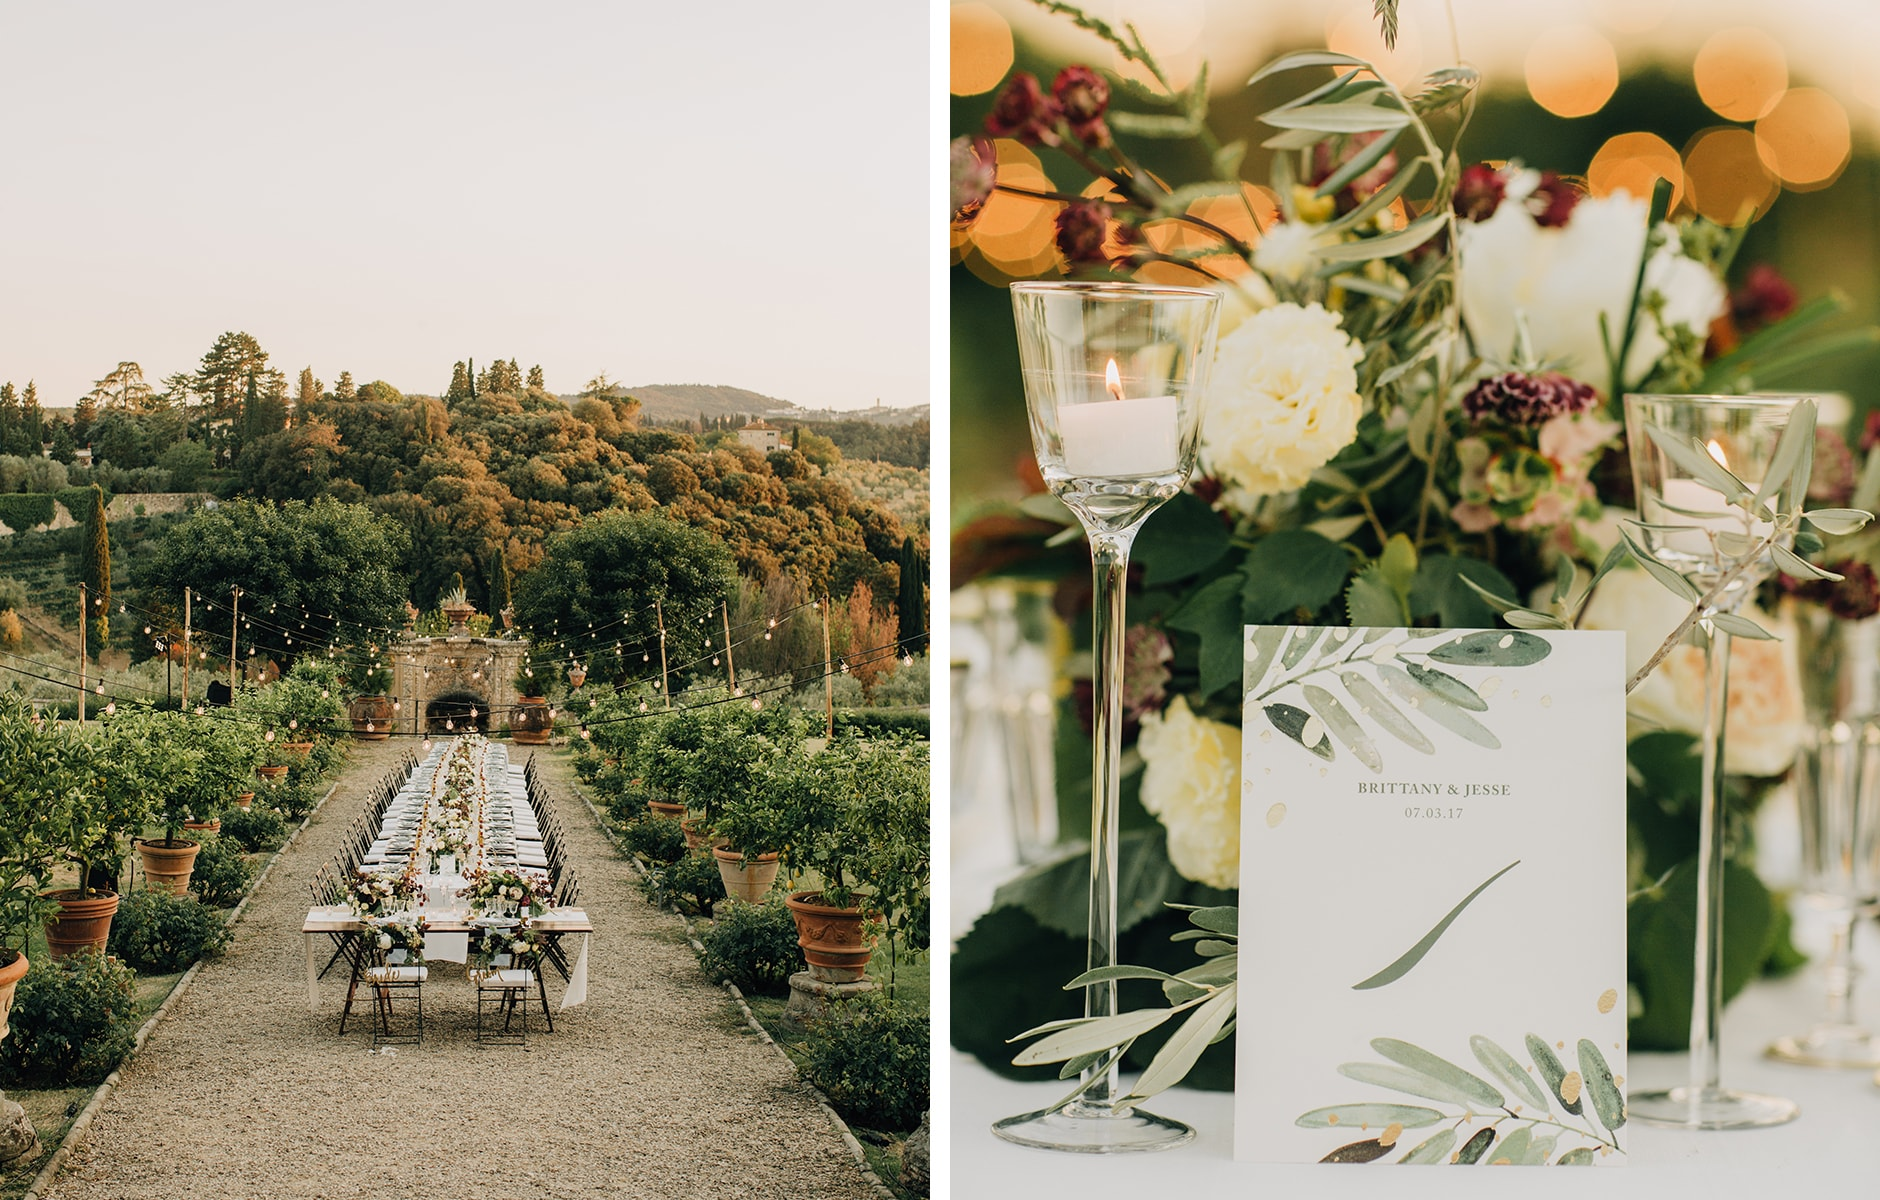 Minted Real Weddings: Brittany and Jesse - 10